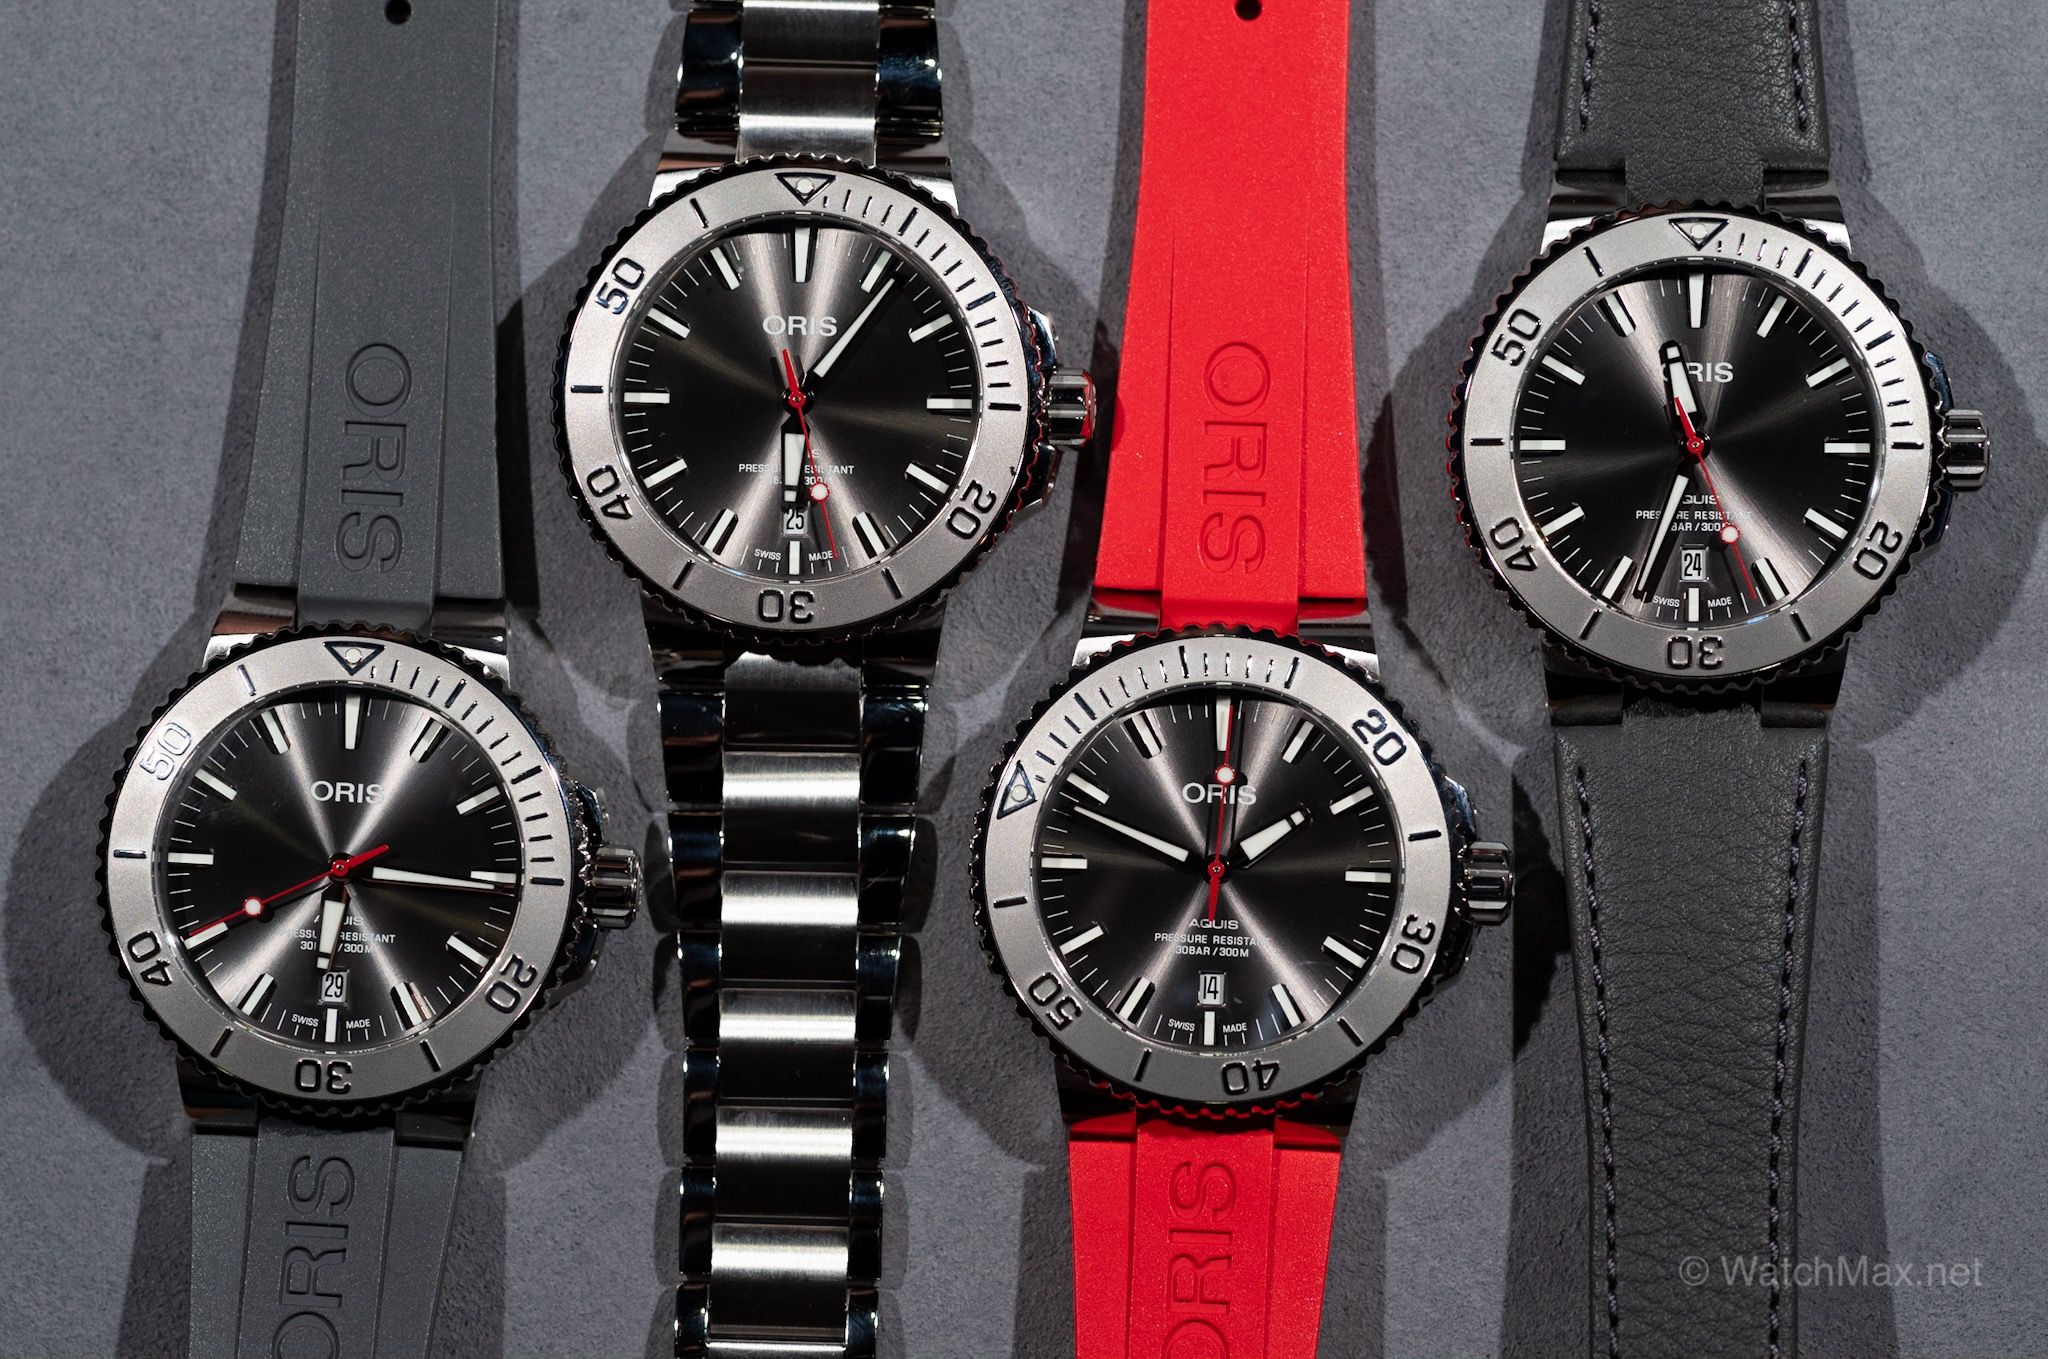 Oris novelties for 2019 first look - Oris is one of these rare watch brands that seem to be genuinely liked by almost everyone in the watch community. What are they doing right? Well as a owner of three of their watches, I have my opinions. However, before I summarize what I think makes Oris special, let's take a closer look at some of the novelties for 2019. Read more.